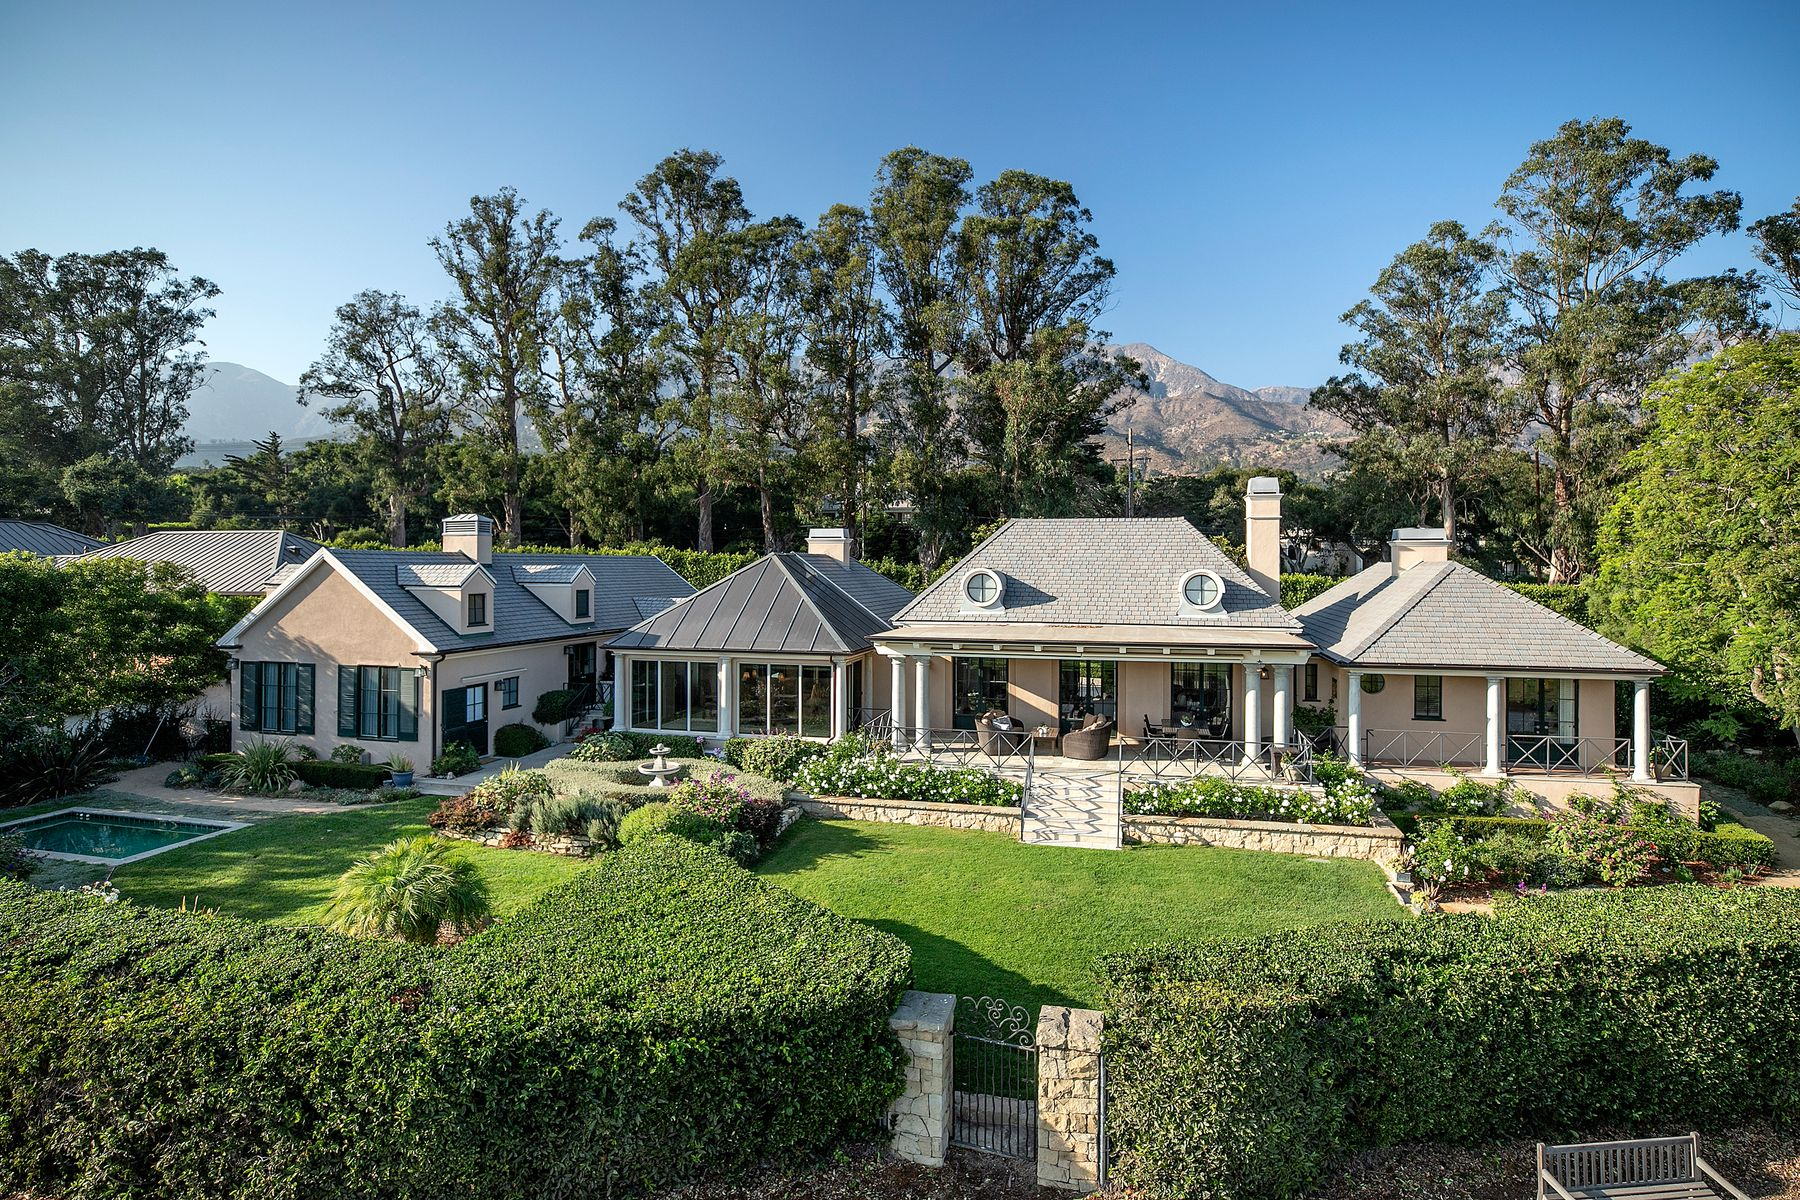 Property for Sale at Birnam Wood Opportunity 2069 Boundary Drive Santa Barbara, California 93108 United States